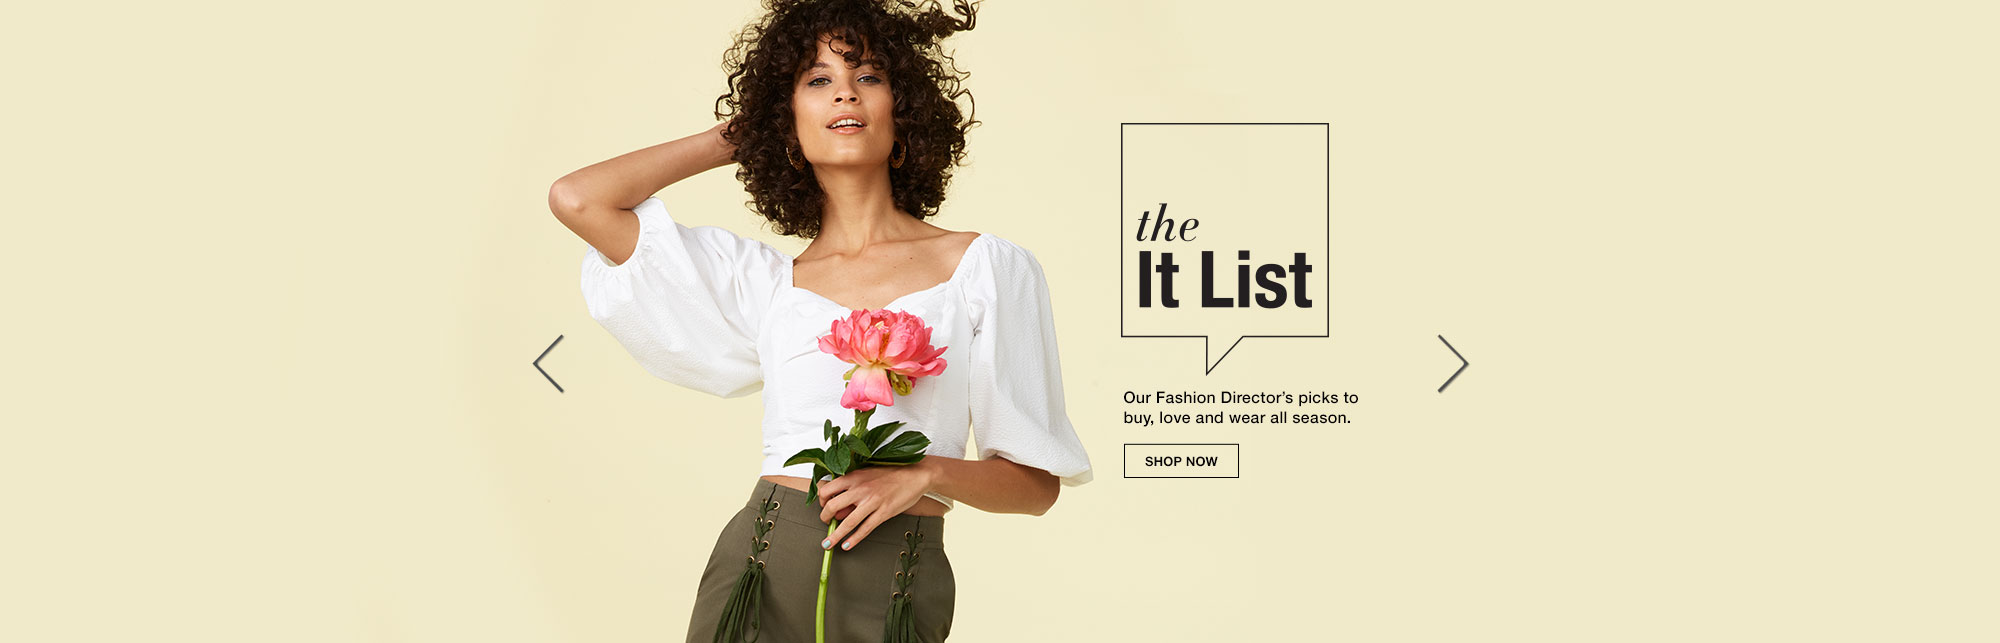 the It List. Our Fashion Director's picks to buy, love and wear all season